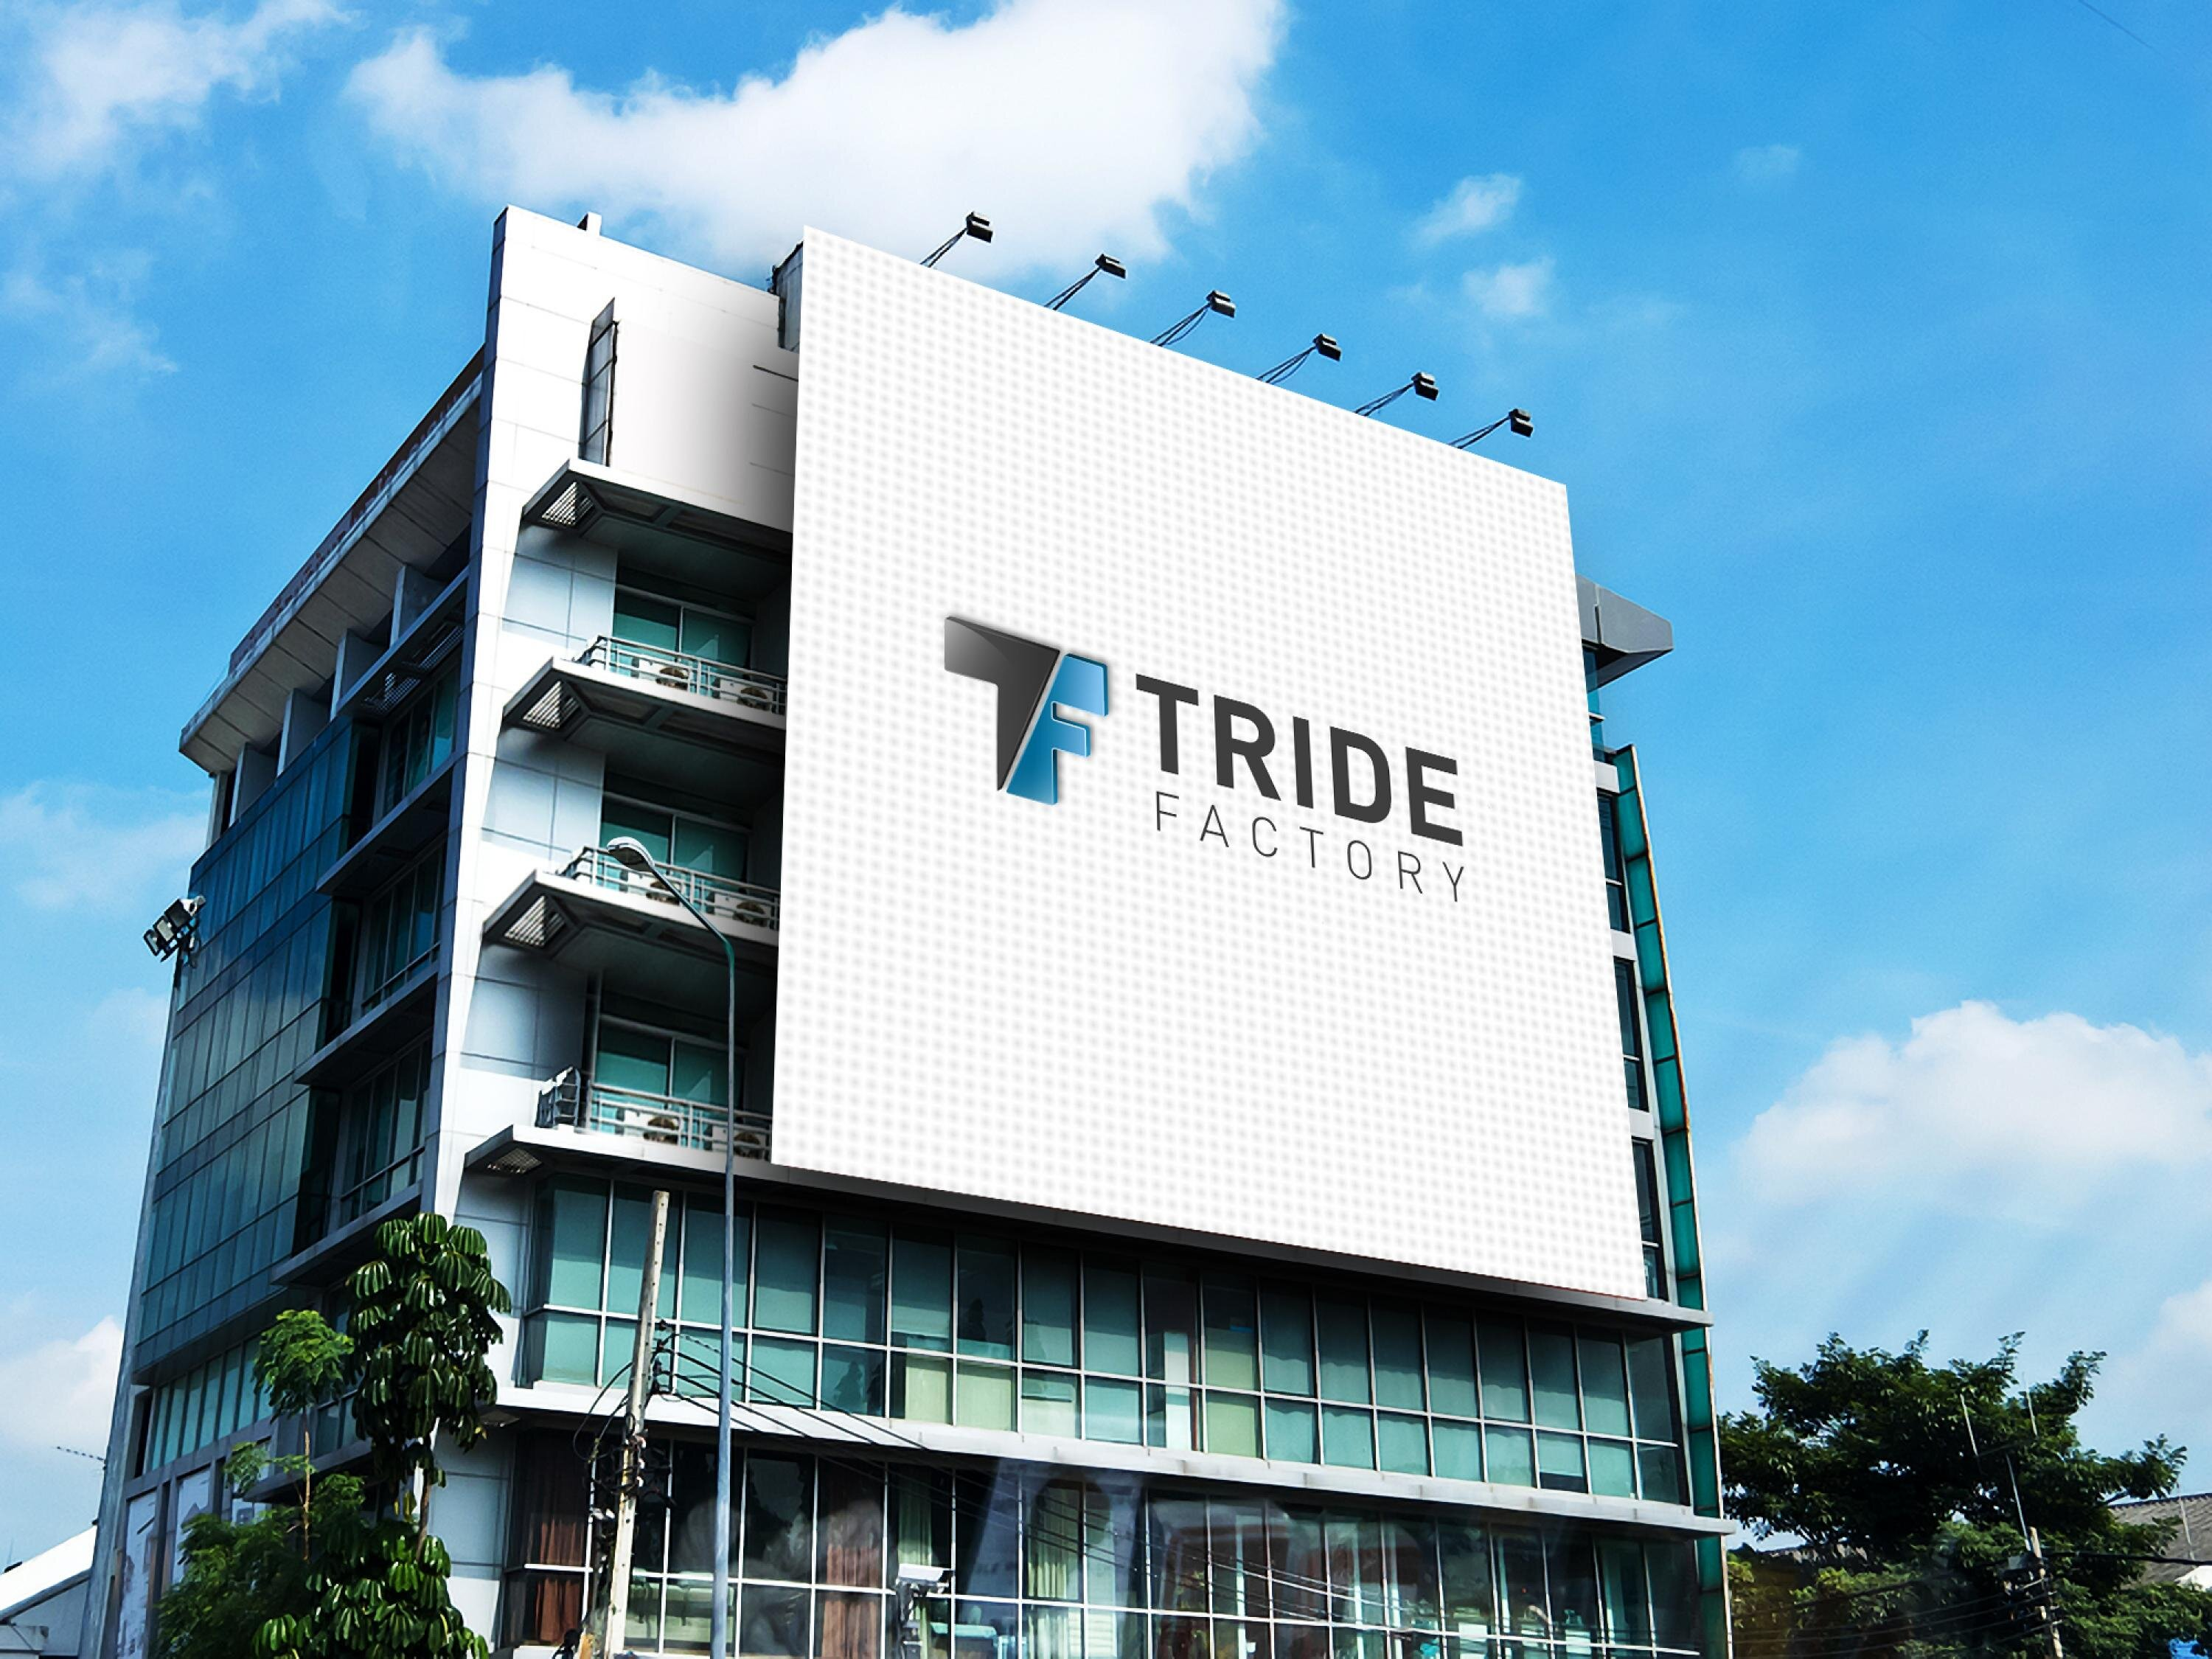 TRIDE factory cover photo